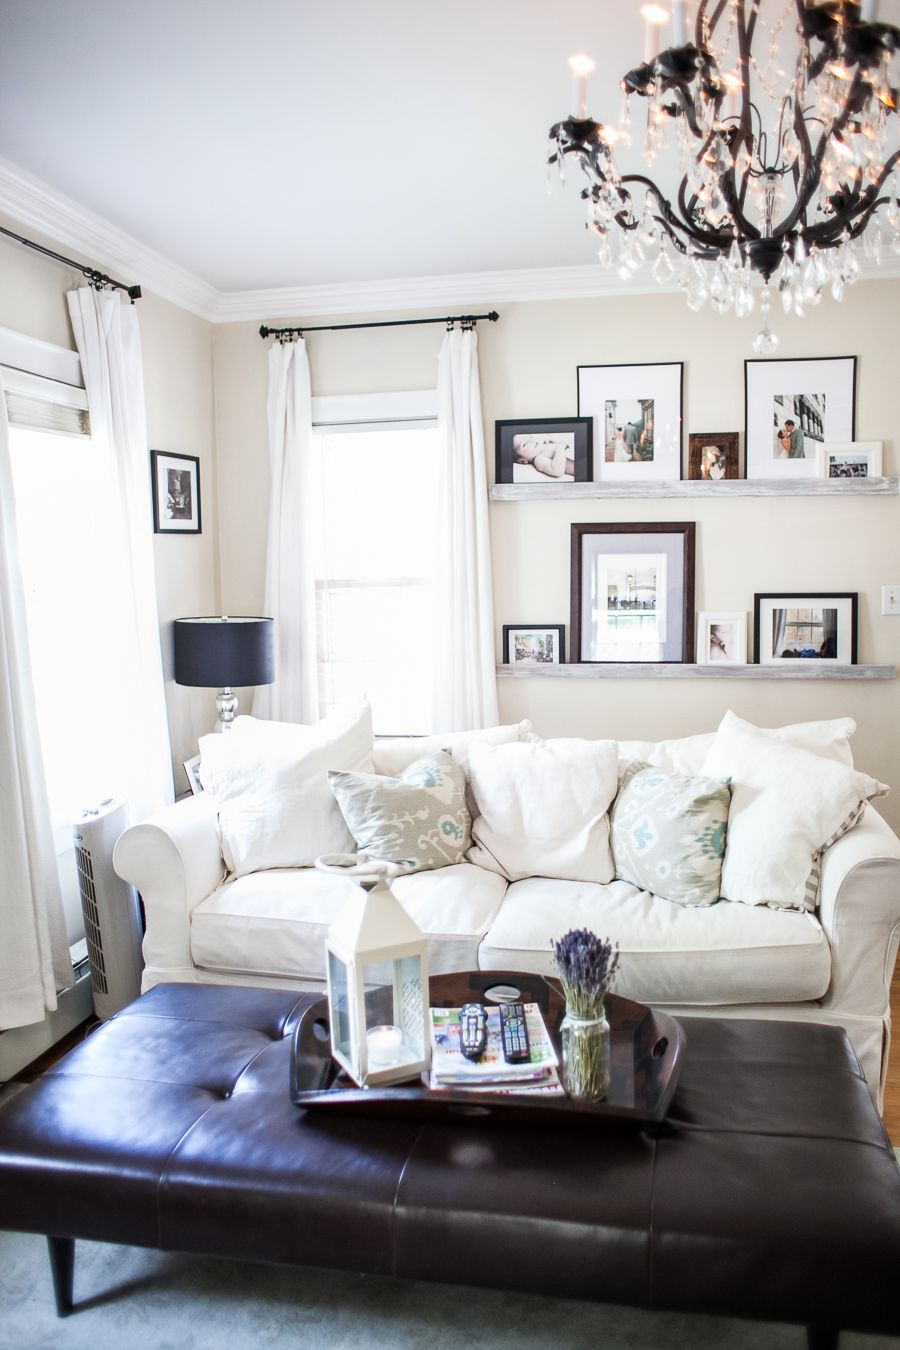 Tranquil Living Room Love The Photo Frames Displayed On The Ledges C Great Heights Photography My New Room Decoracao Casas